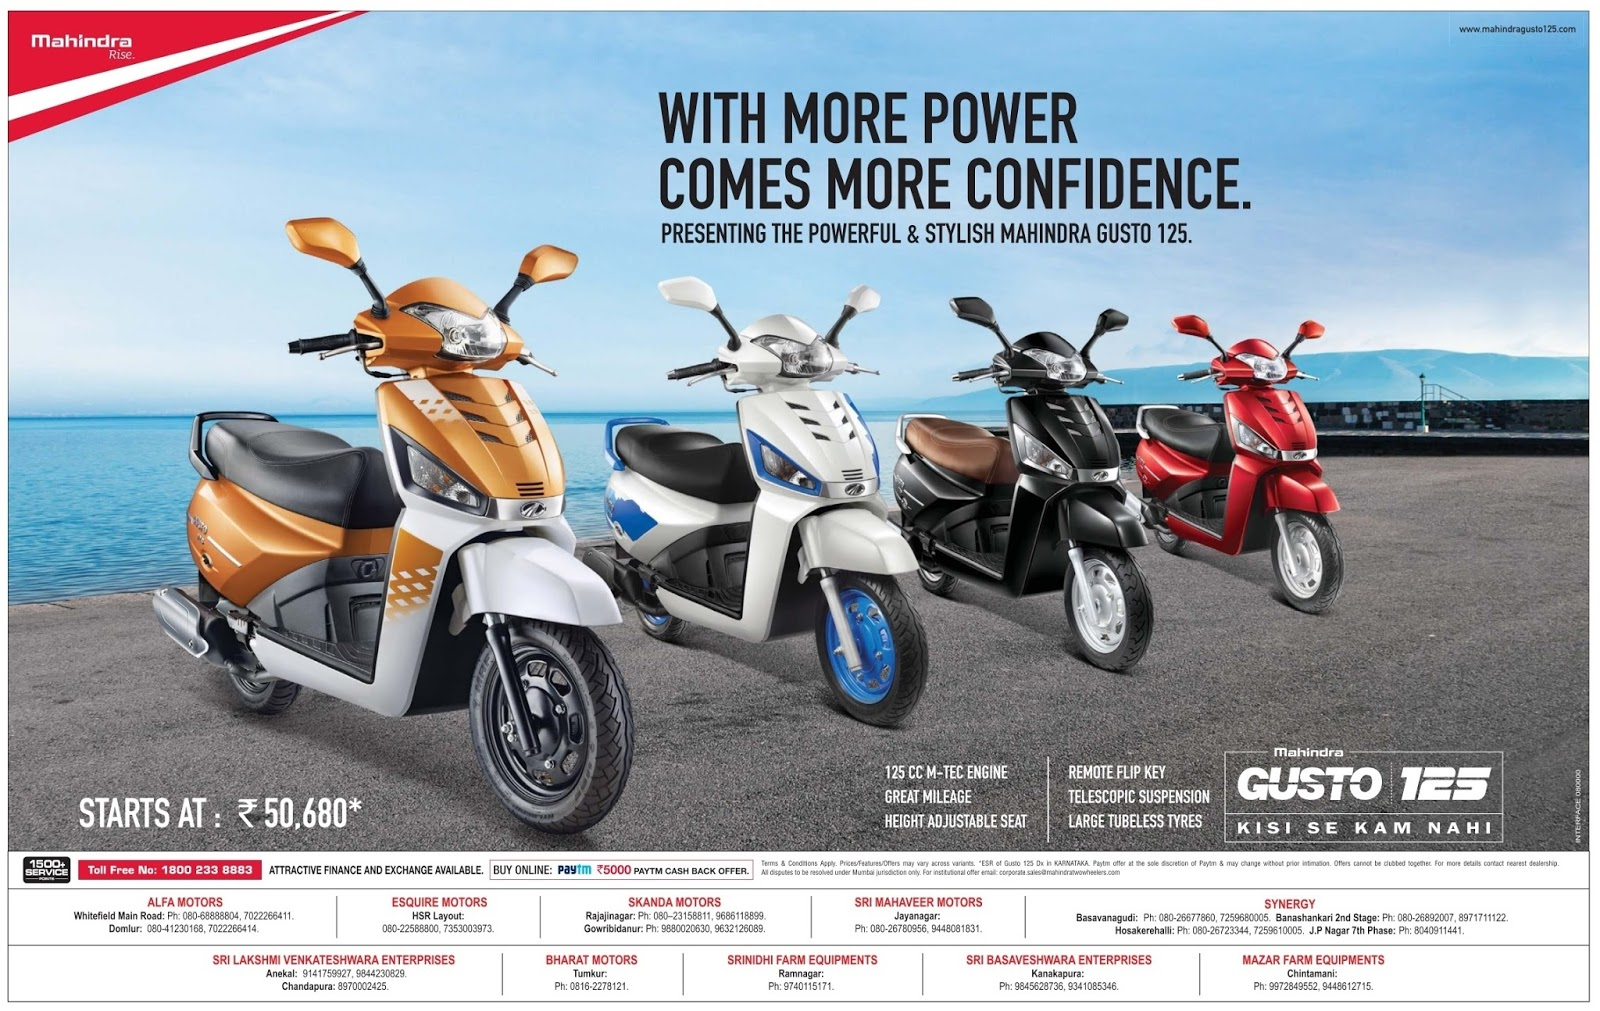 Mahindra Gusto 125- cash back offer - with more power comes more conifence | March 2016 discount offer